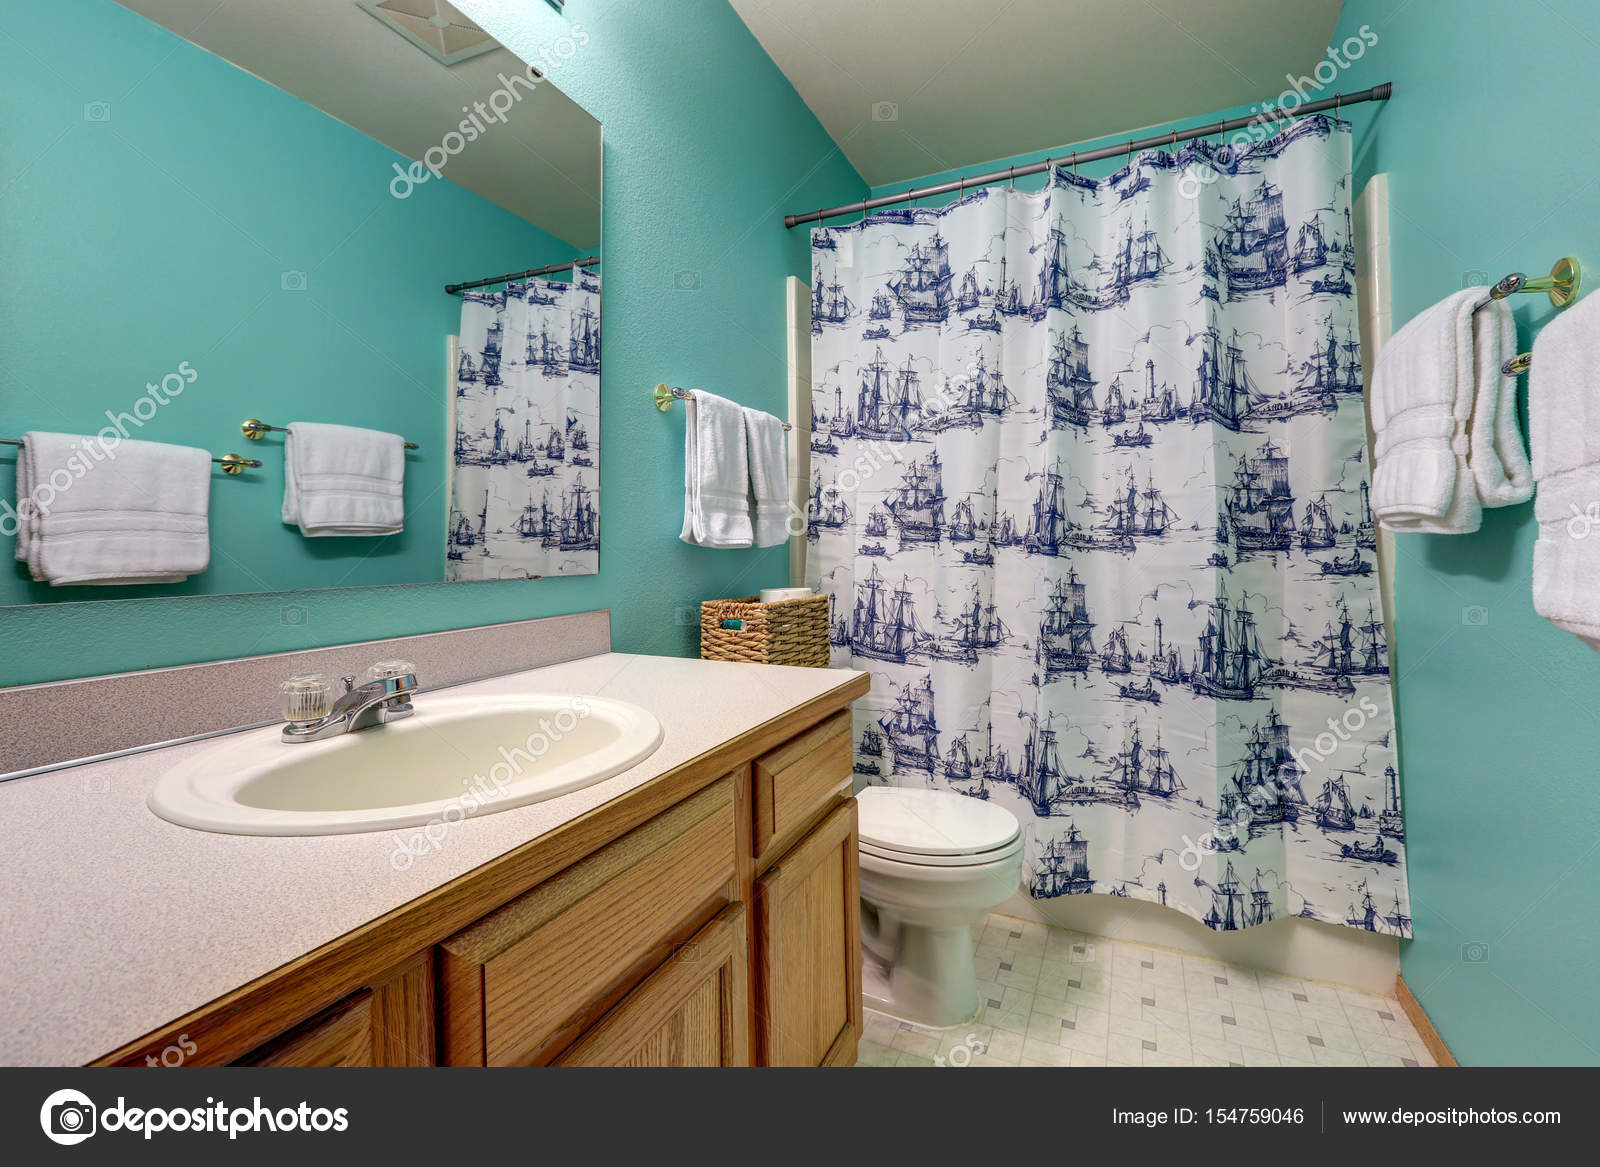 Turquoise bathroom interior features bathroom vanity — Stock Photo